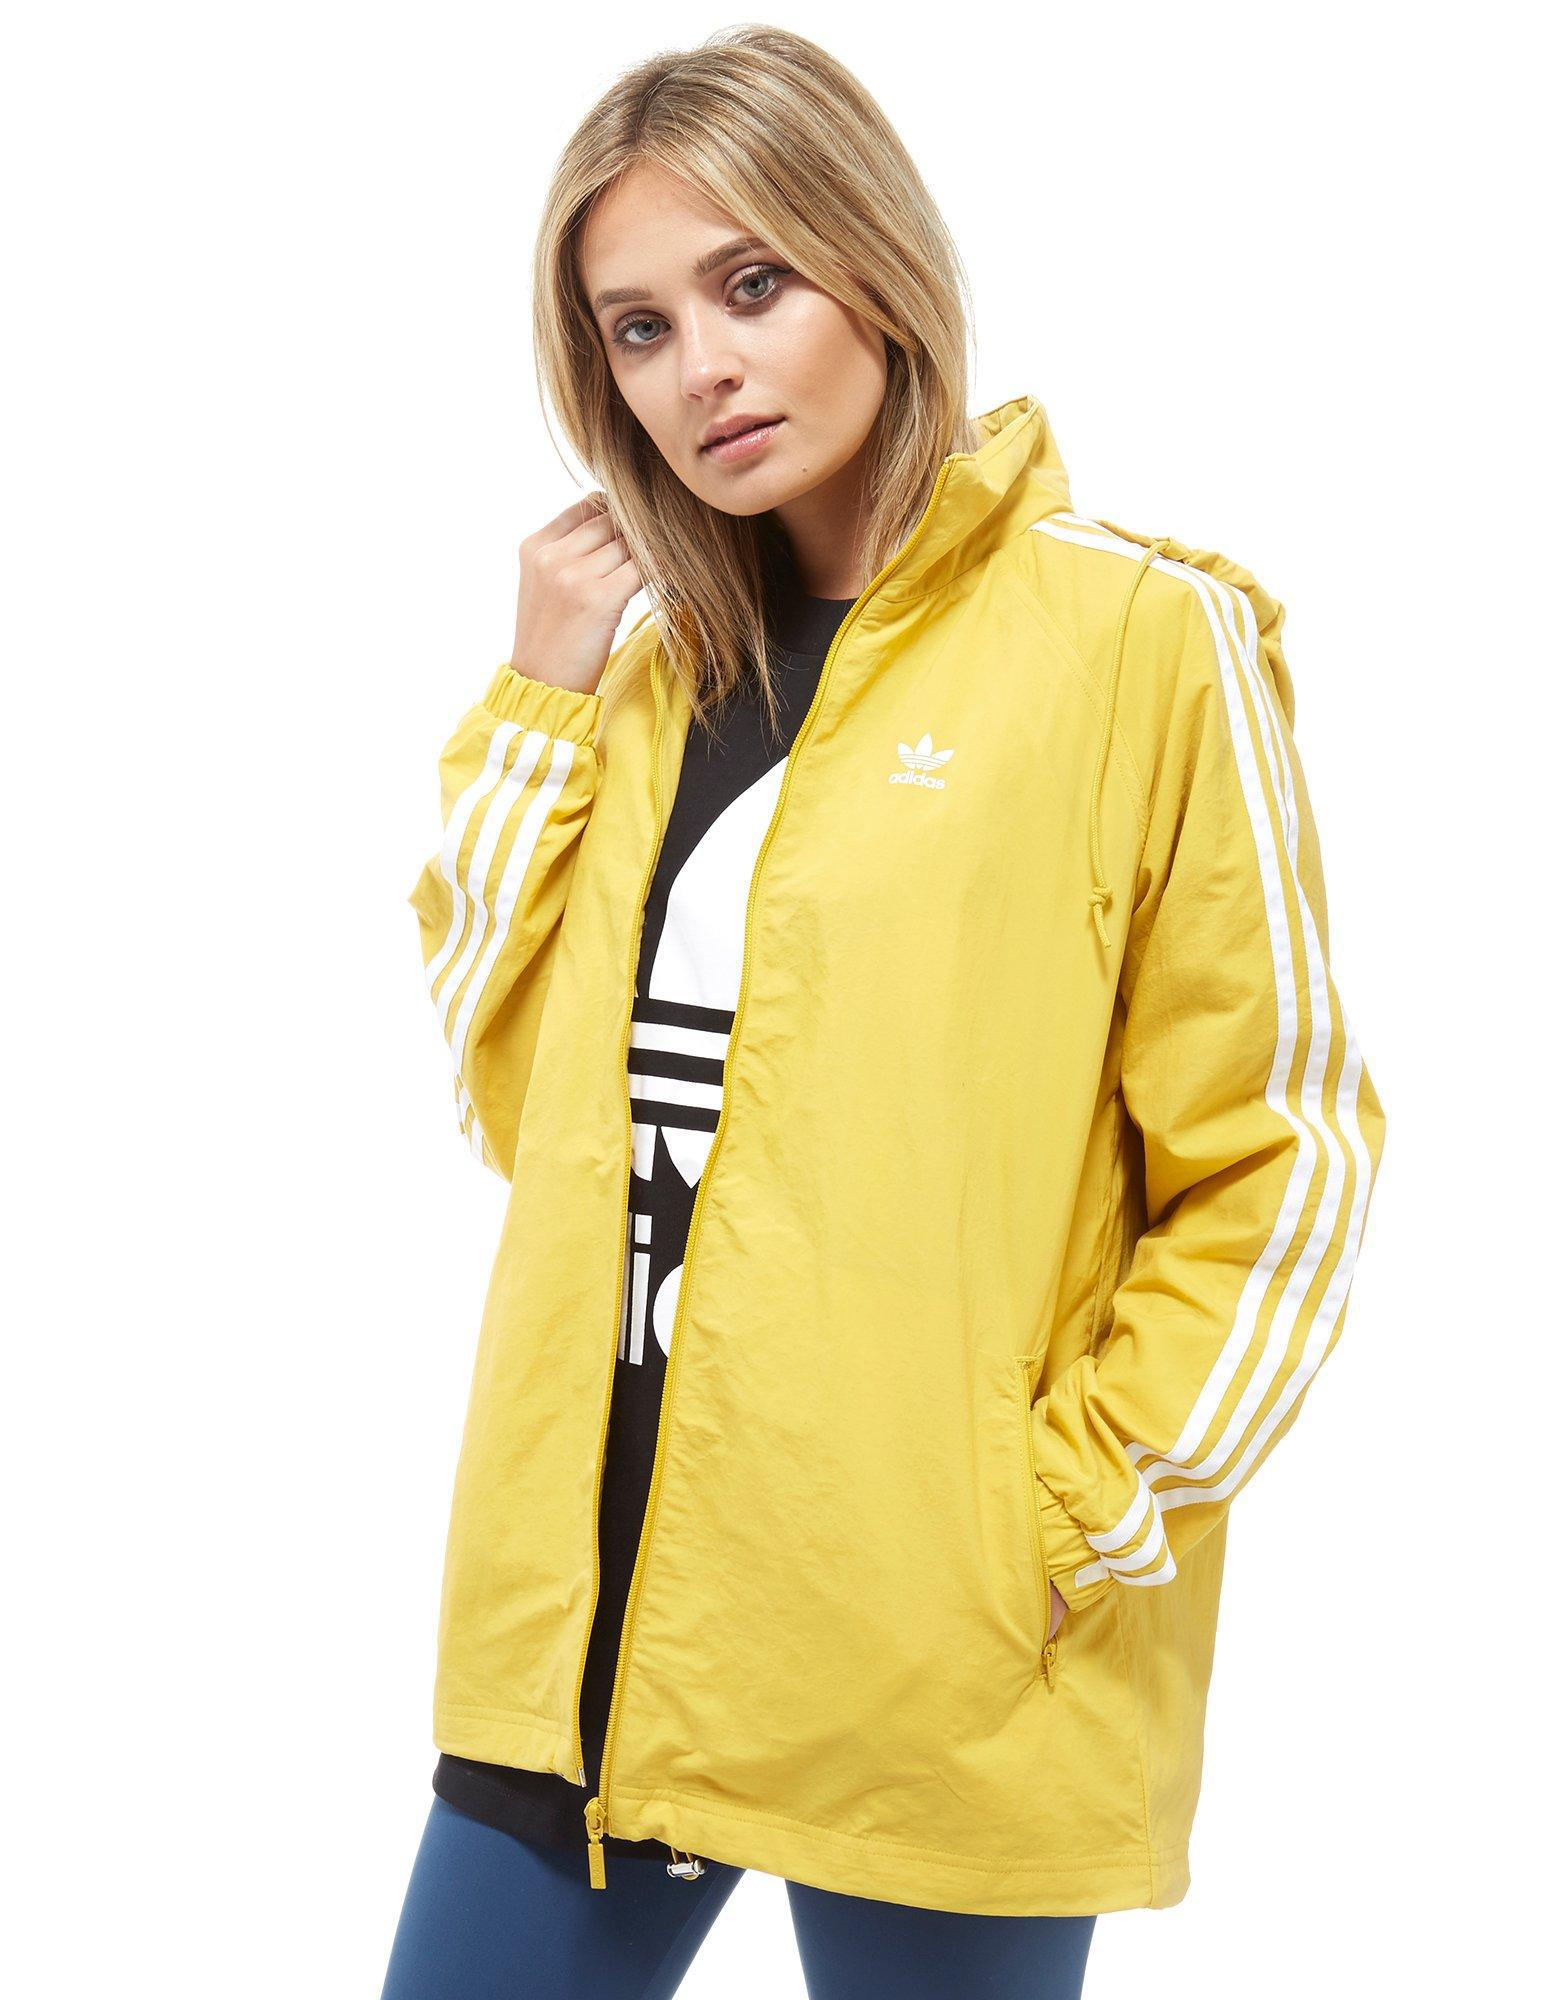 859205a21e9f Lyst - adidas Originals Stadium Yellow Jacket - Womens Uk 6 in Yellow